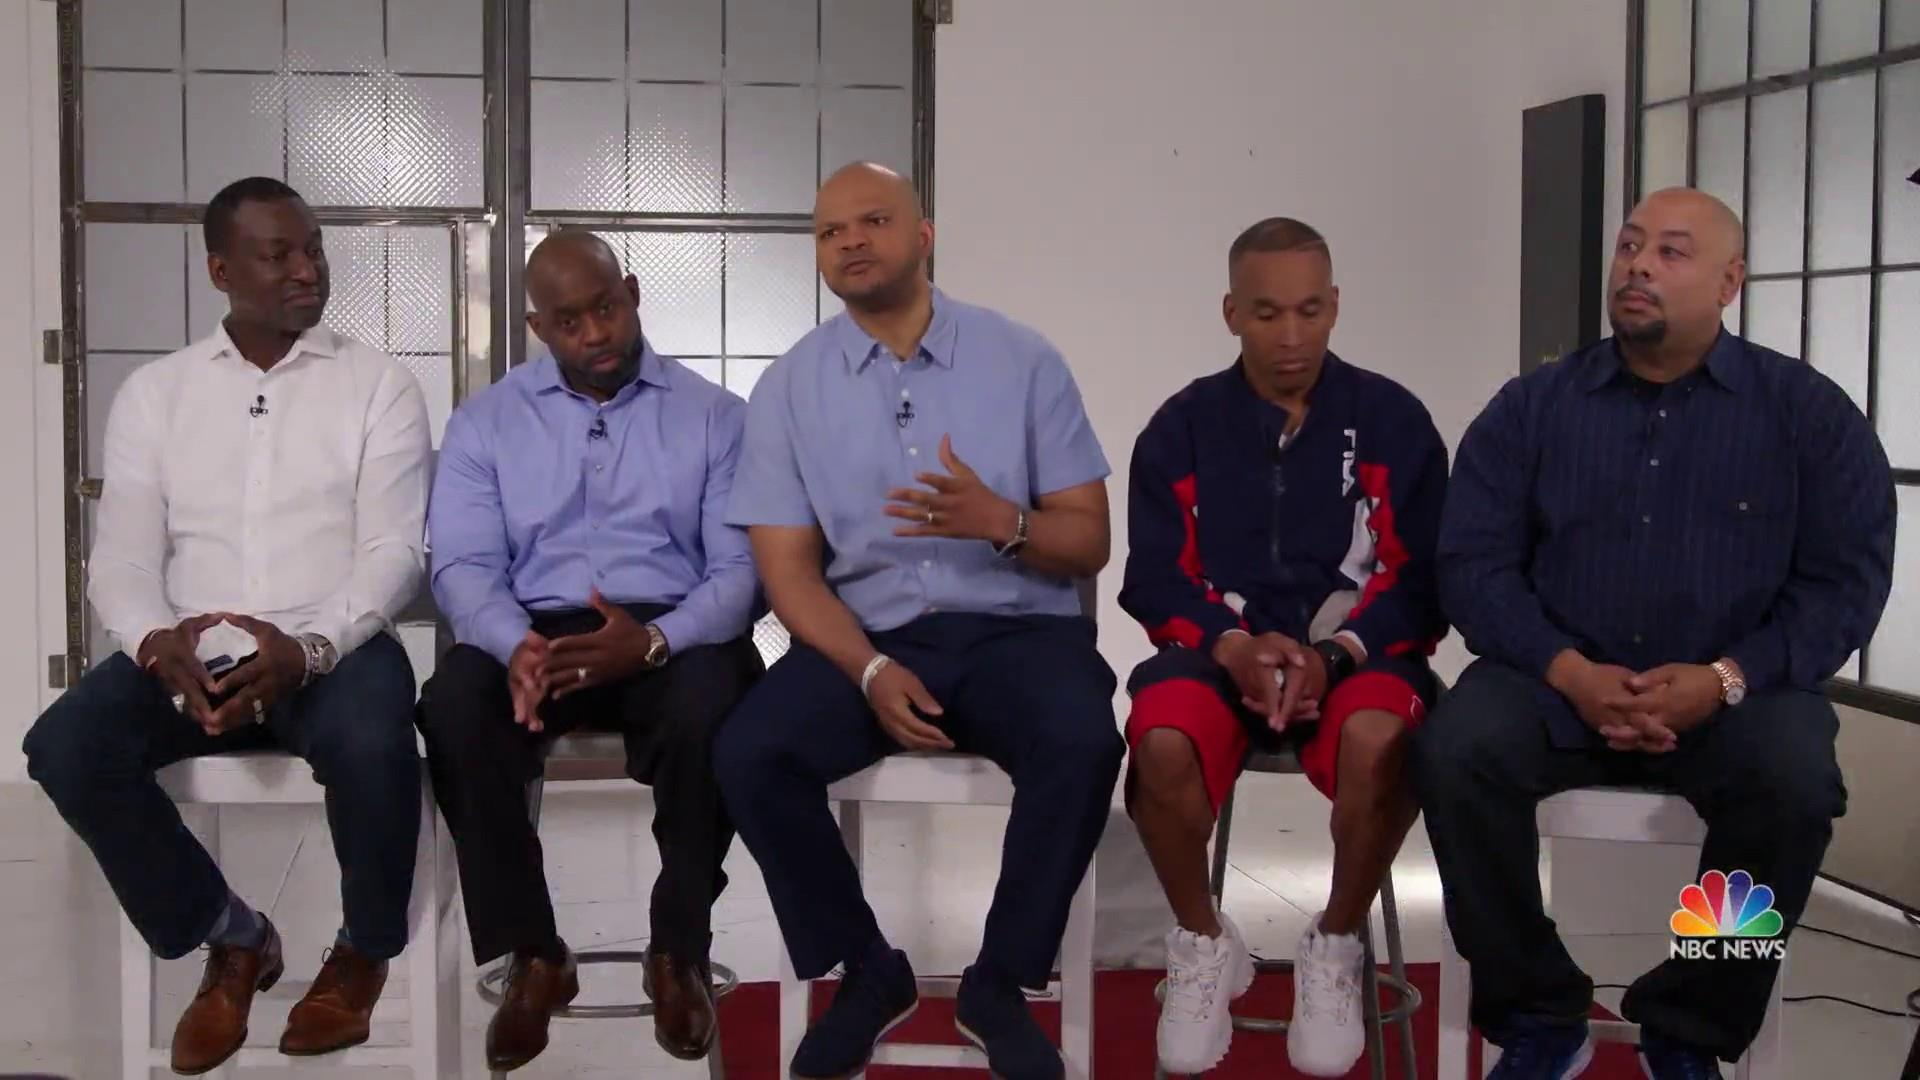 Men known as 'Central Park Five' speak out 30 years after wrongful conviction